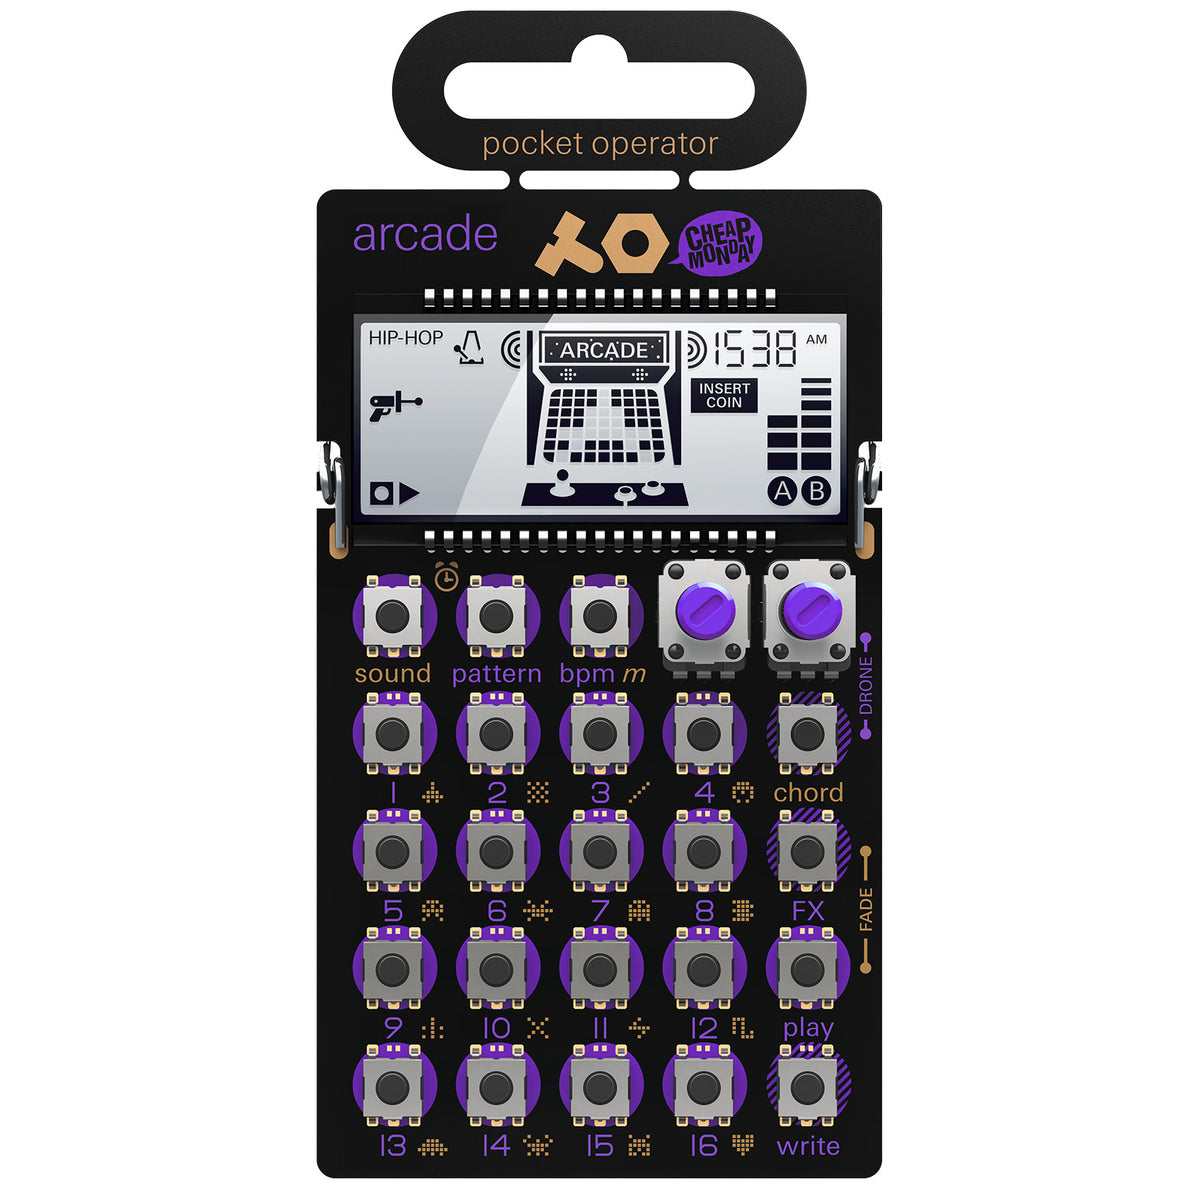 Teenage Engineering: PO-20 Arcade Pocket Operator